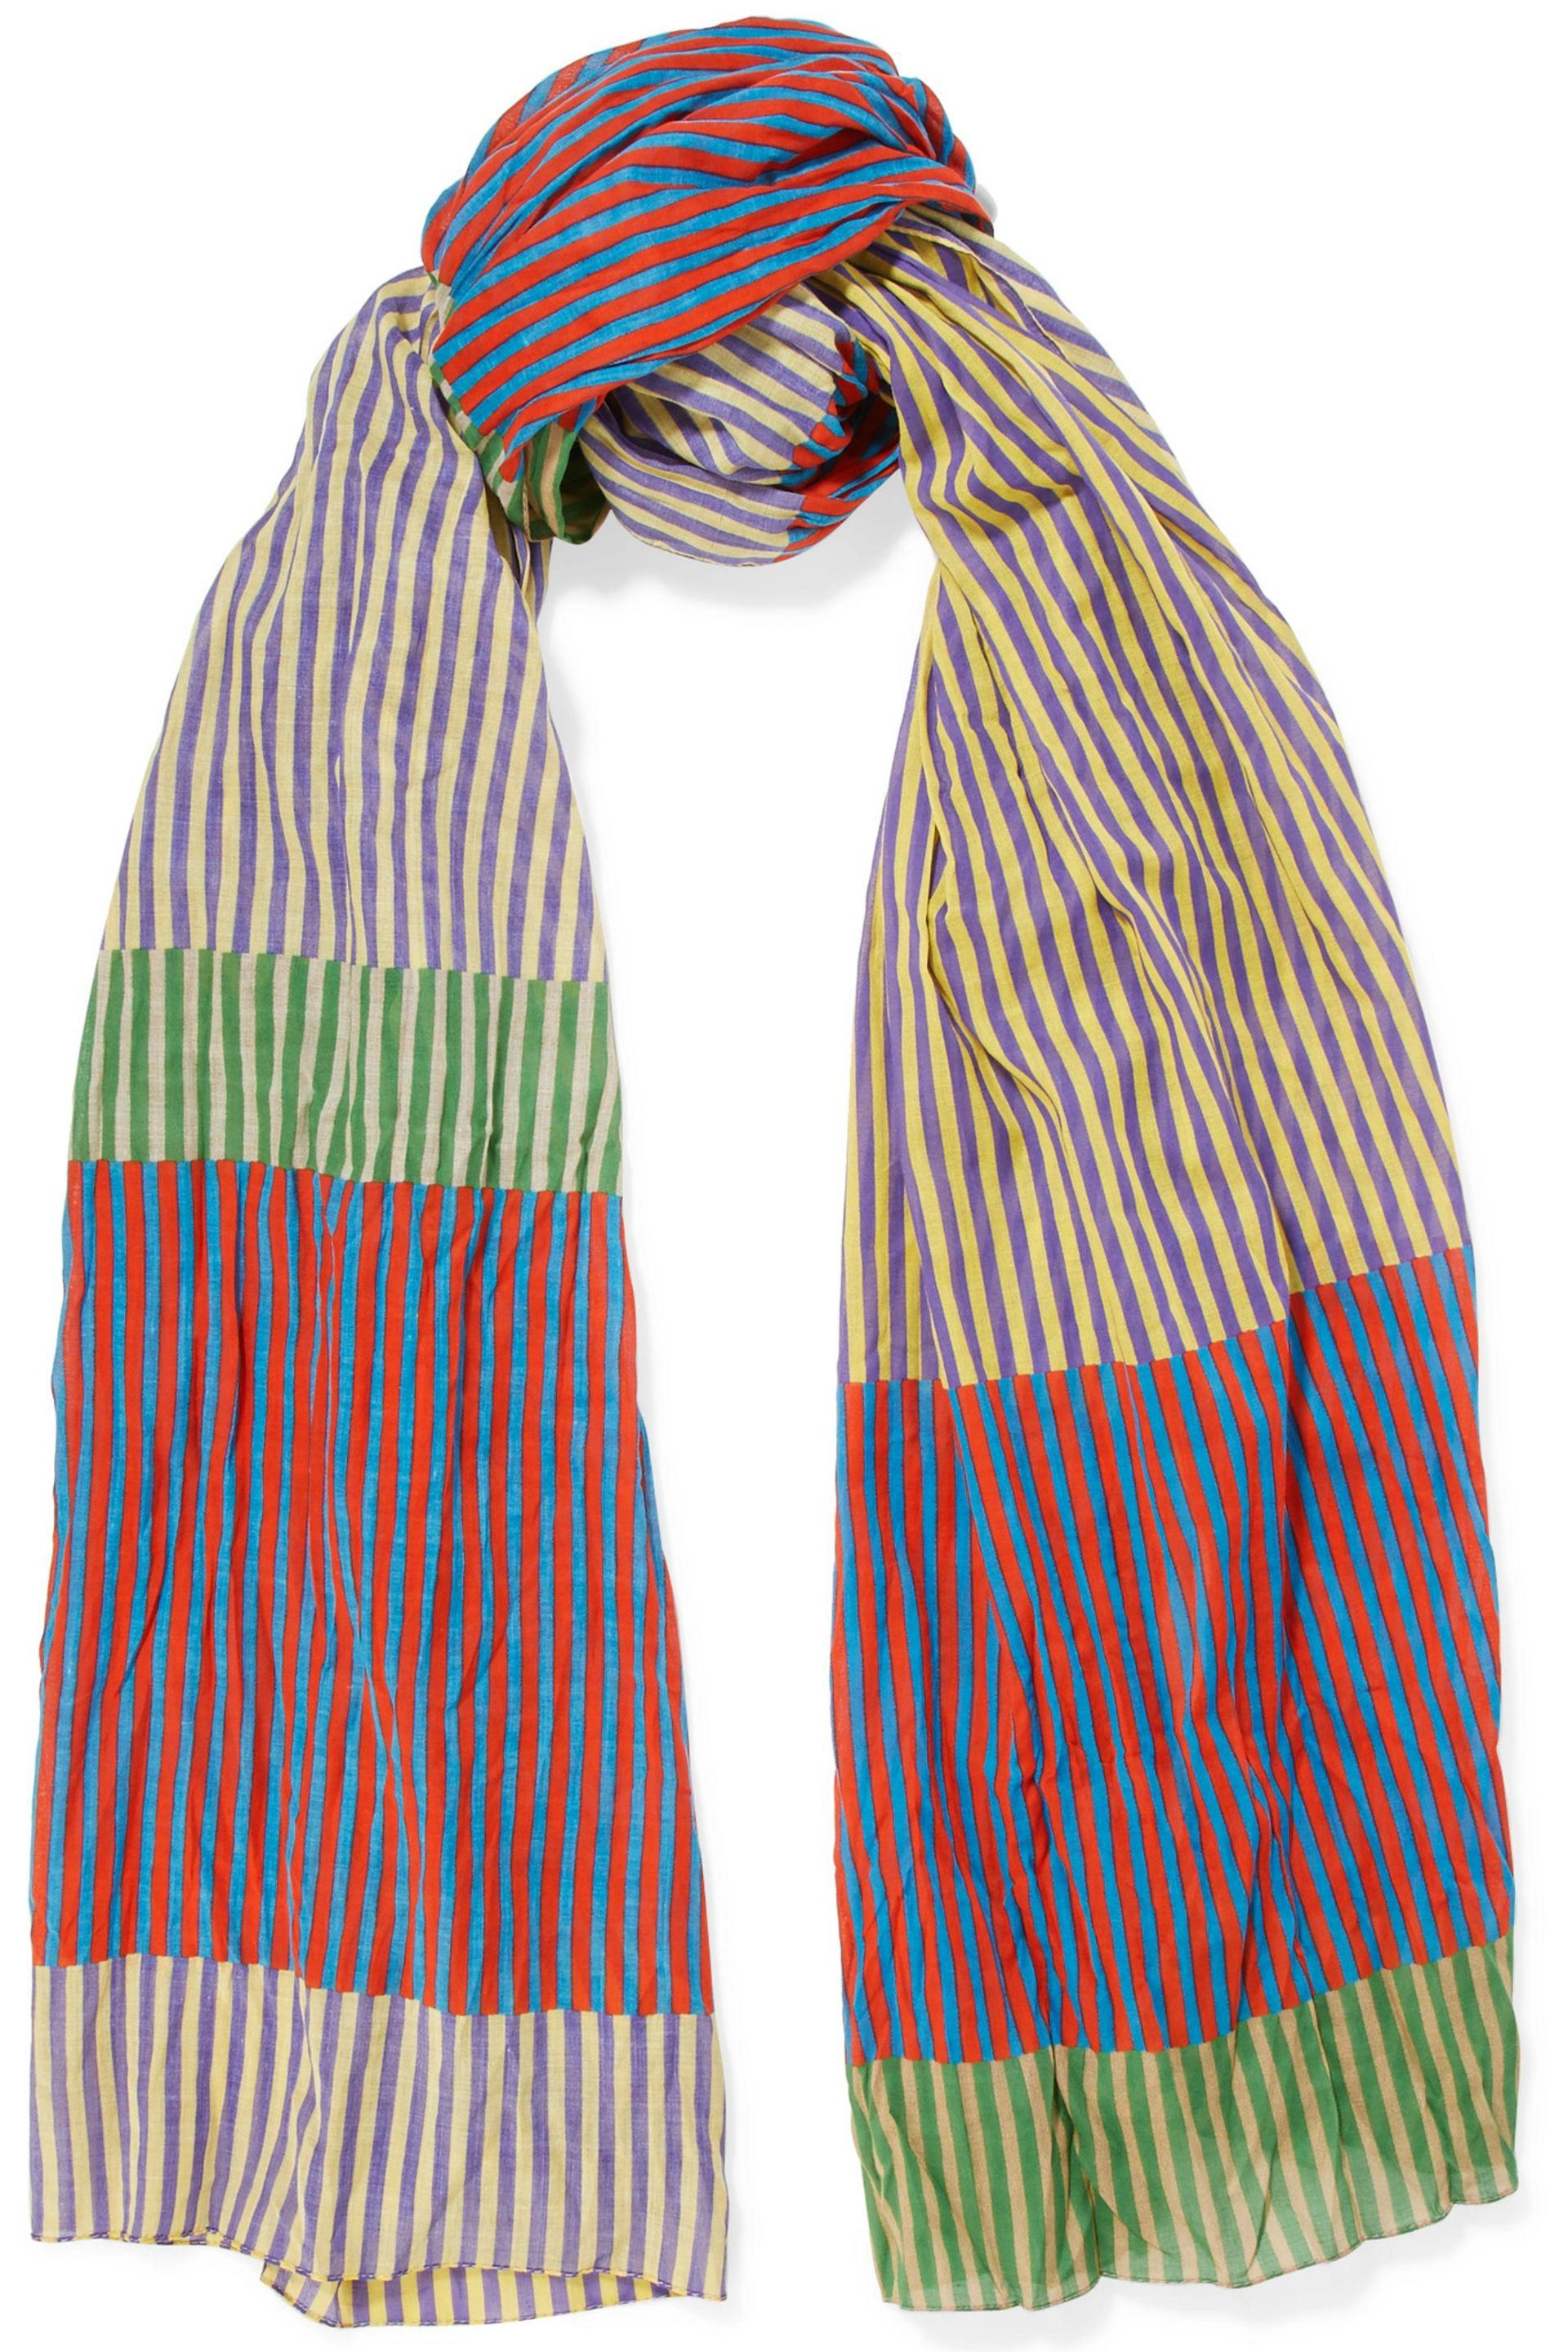 ACCESSORIES - Scarves Tomas Maier 7vmAHos5